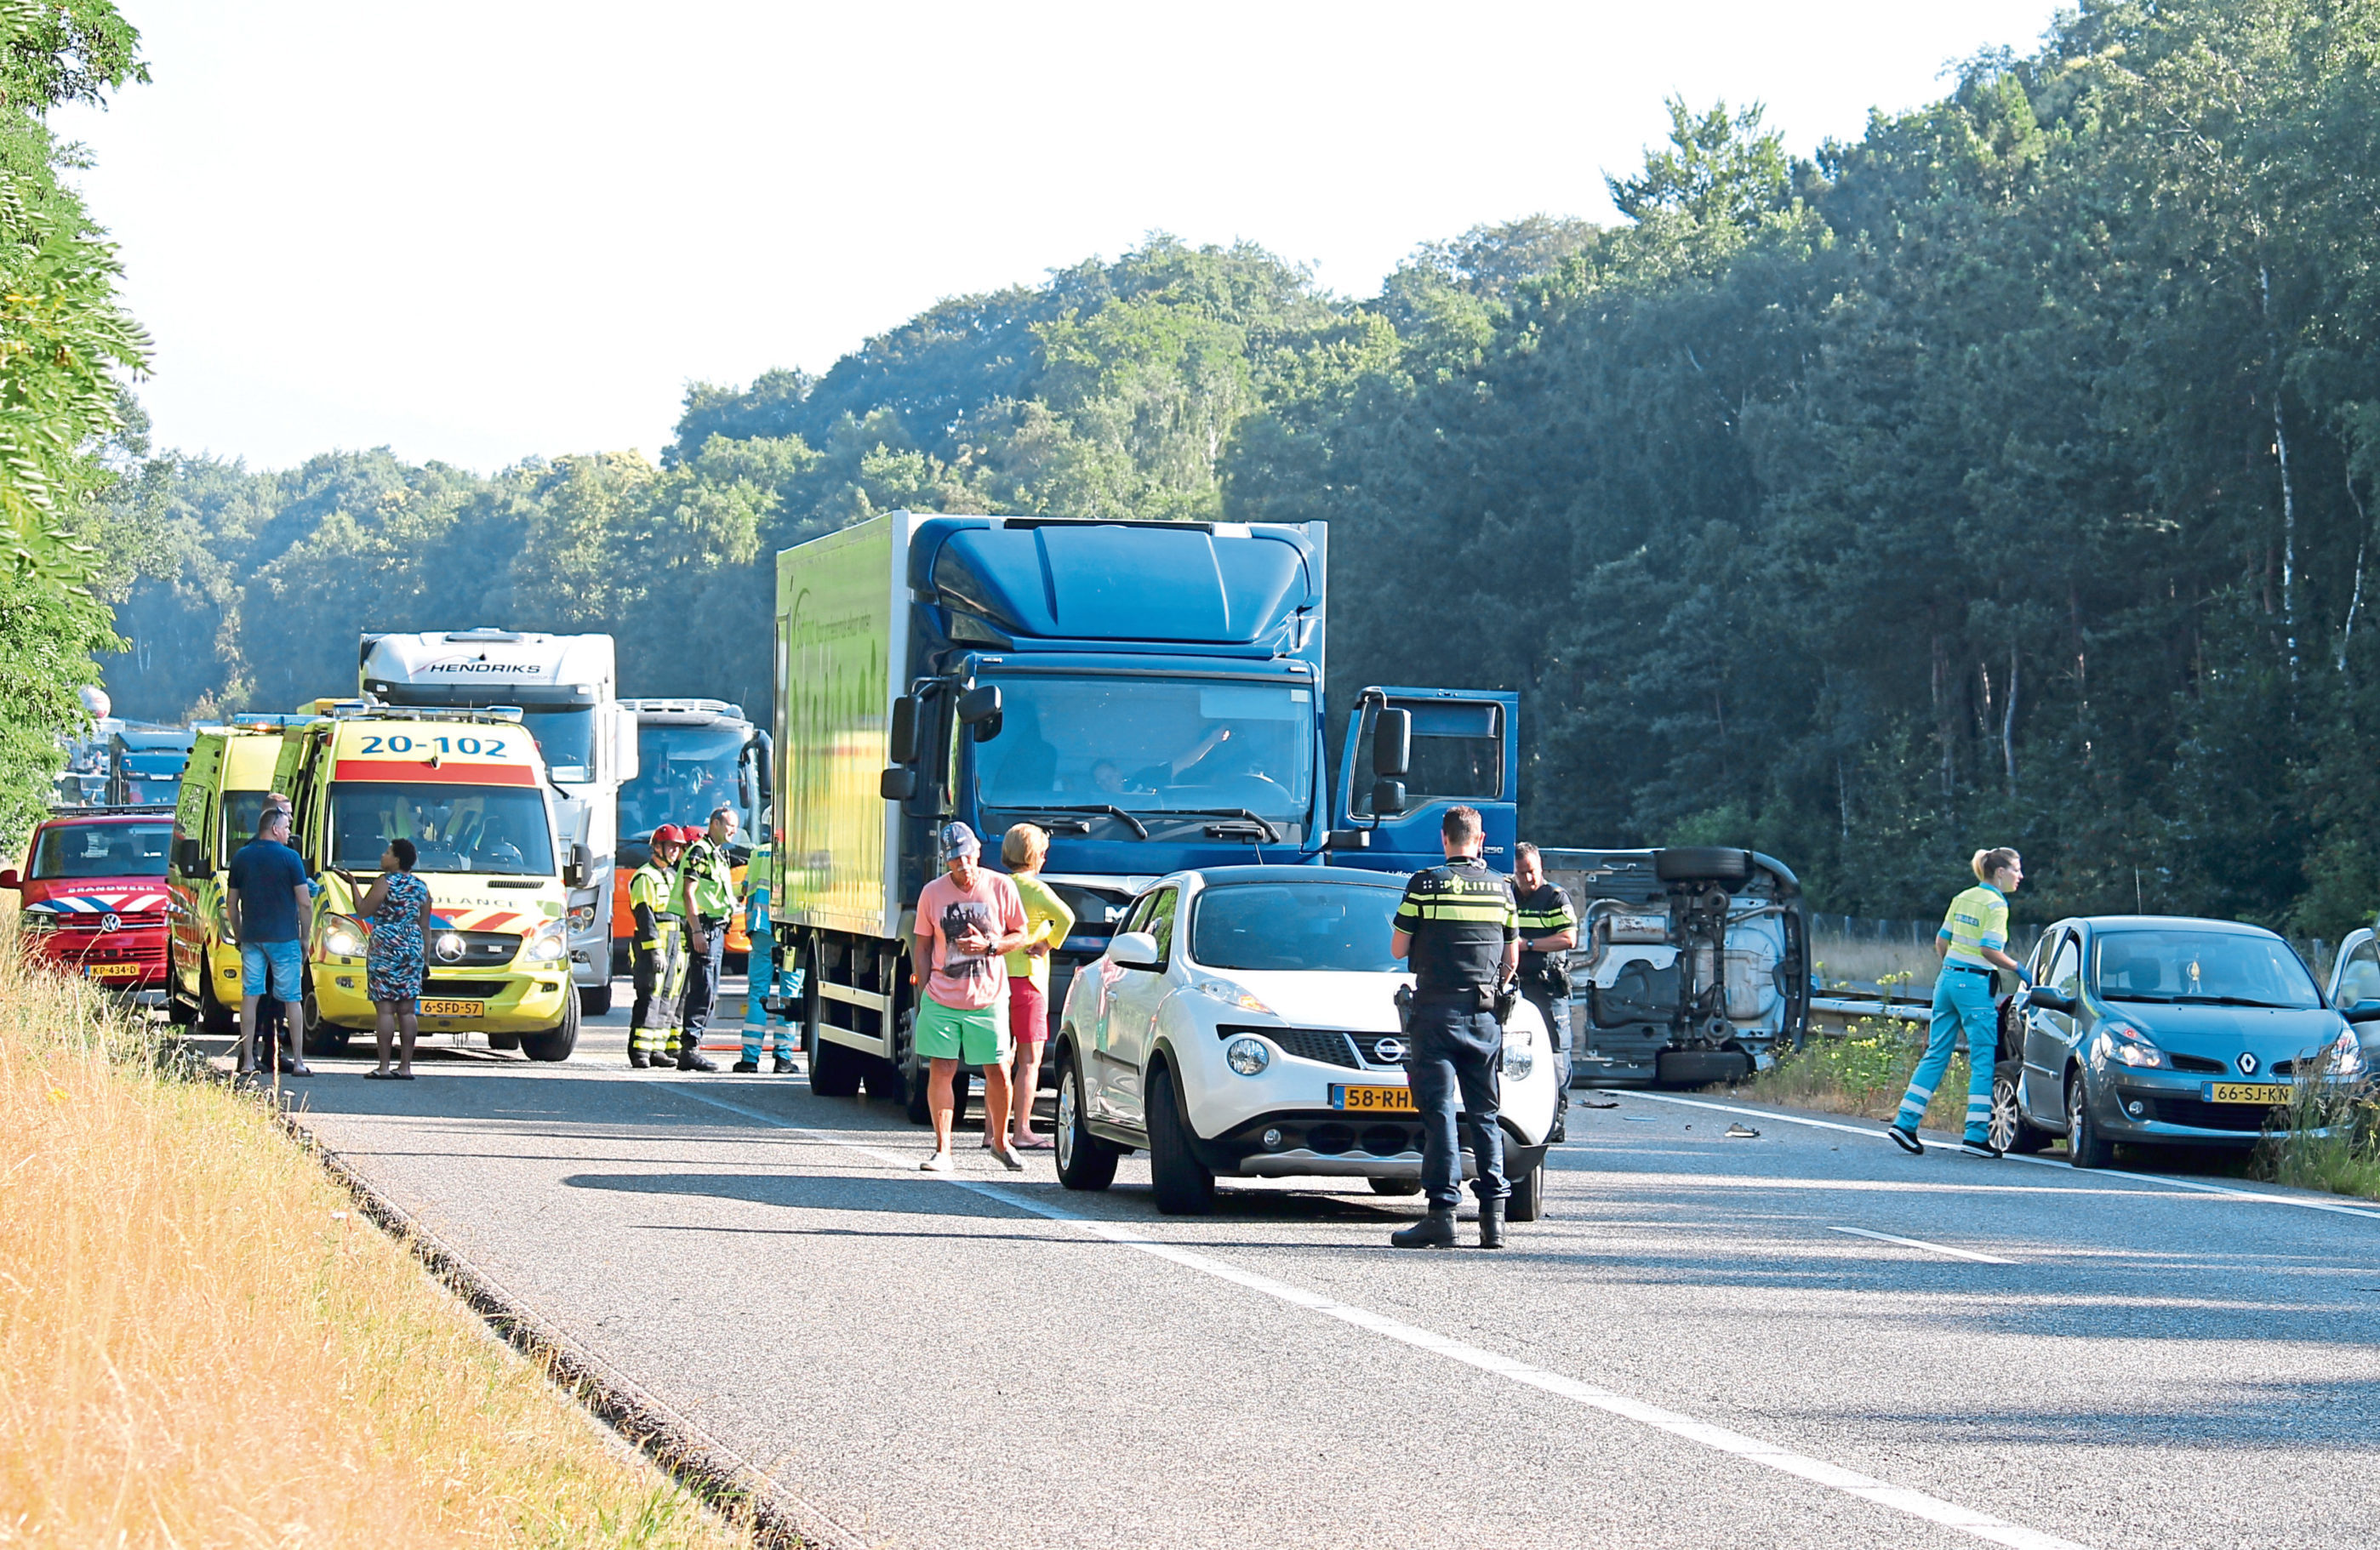 Traffic was brought to a halt by the fatal crash near Hoogerheide in the south-east of the Netherlands